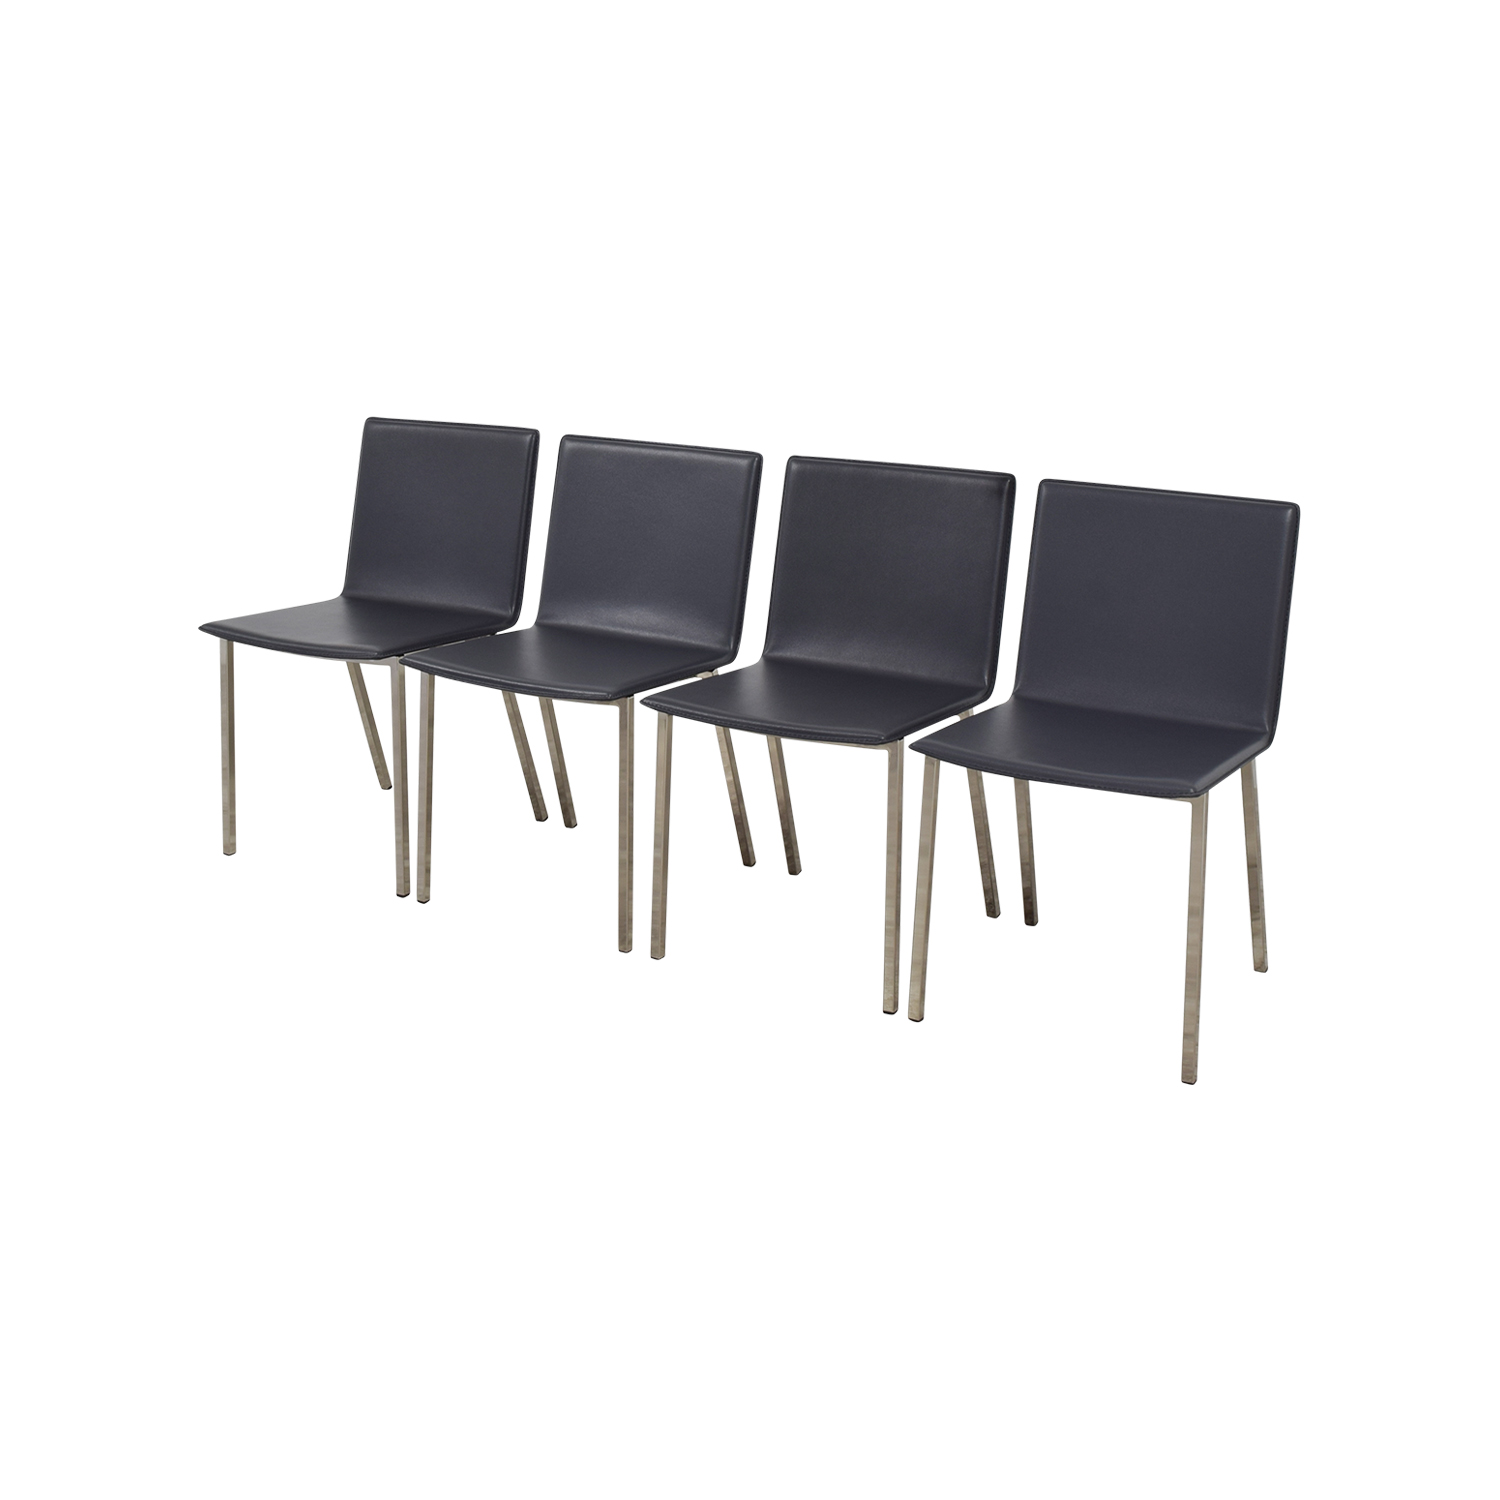 OFF CB2 CB2 Phoenix Carbon Grey Chairs Chairs